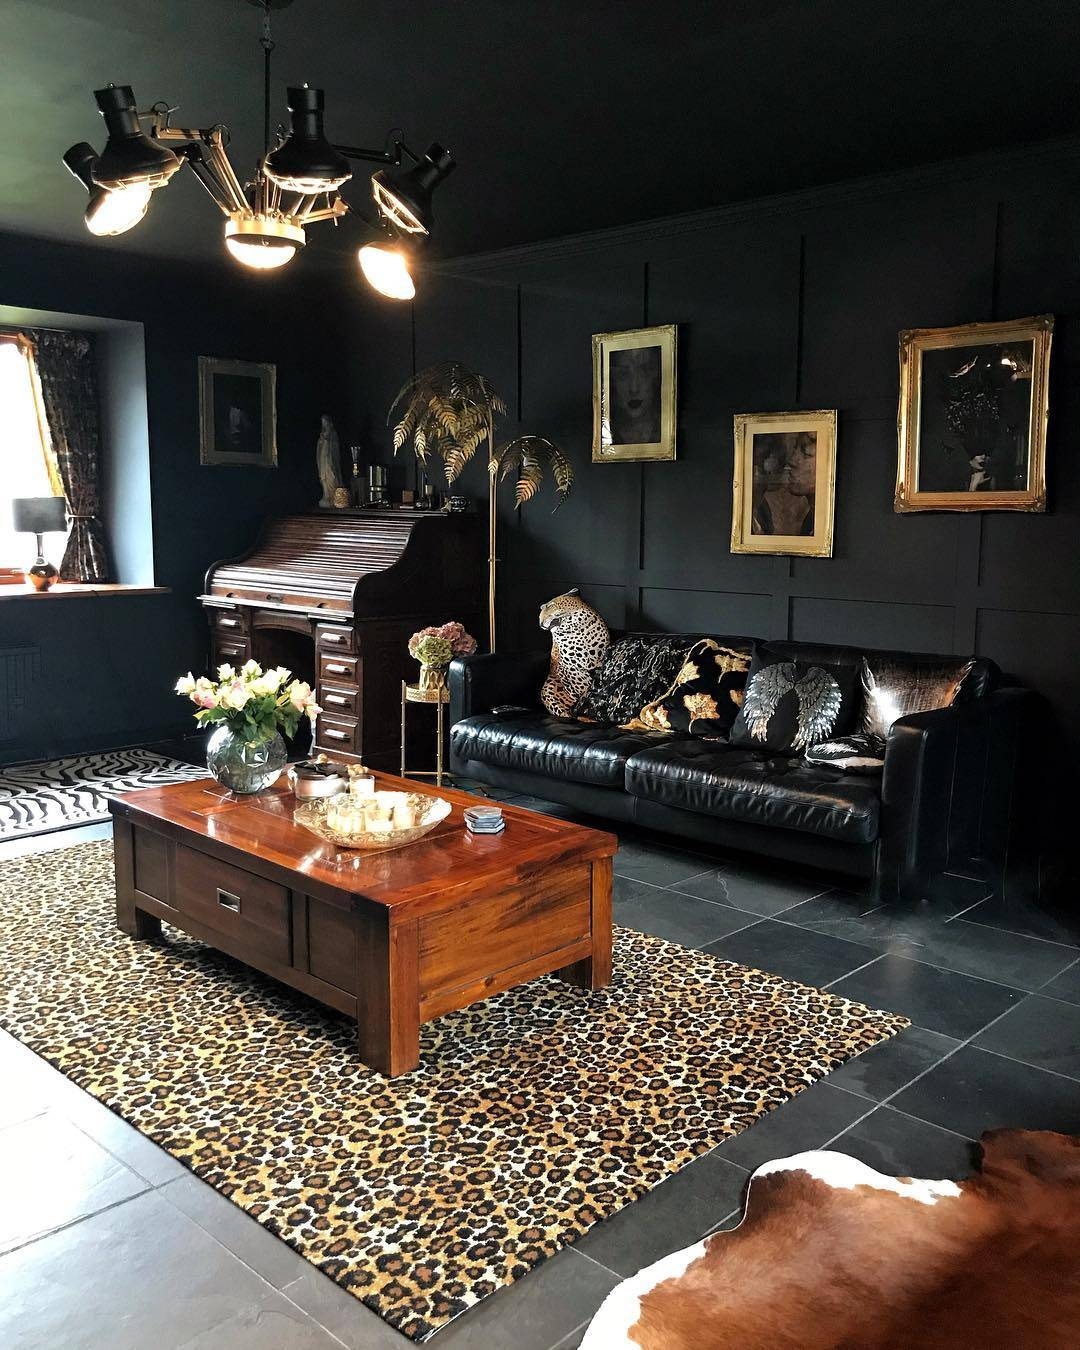 dark interior maximalist wall decor